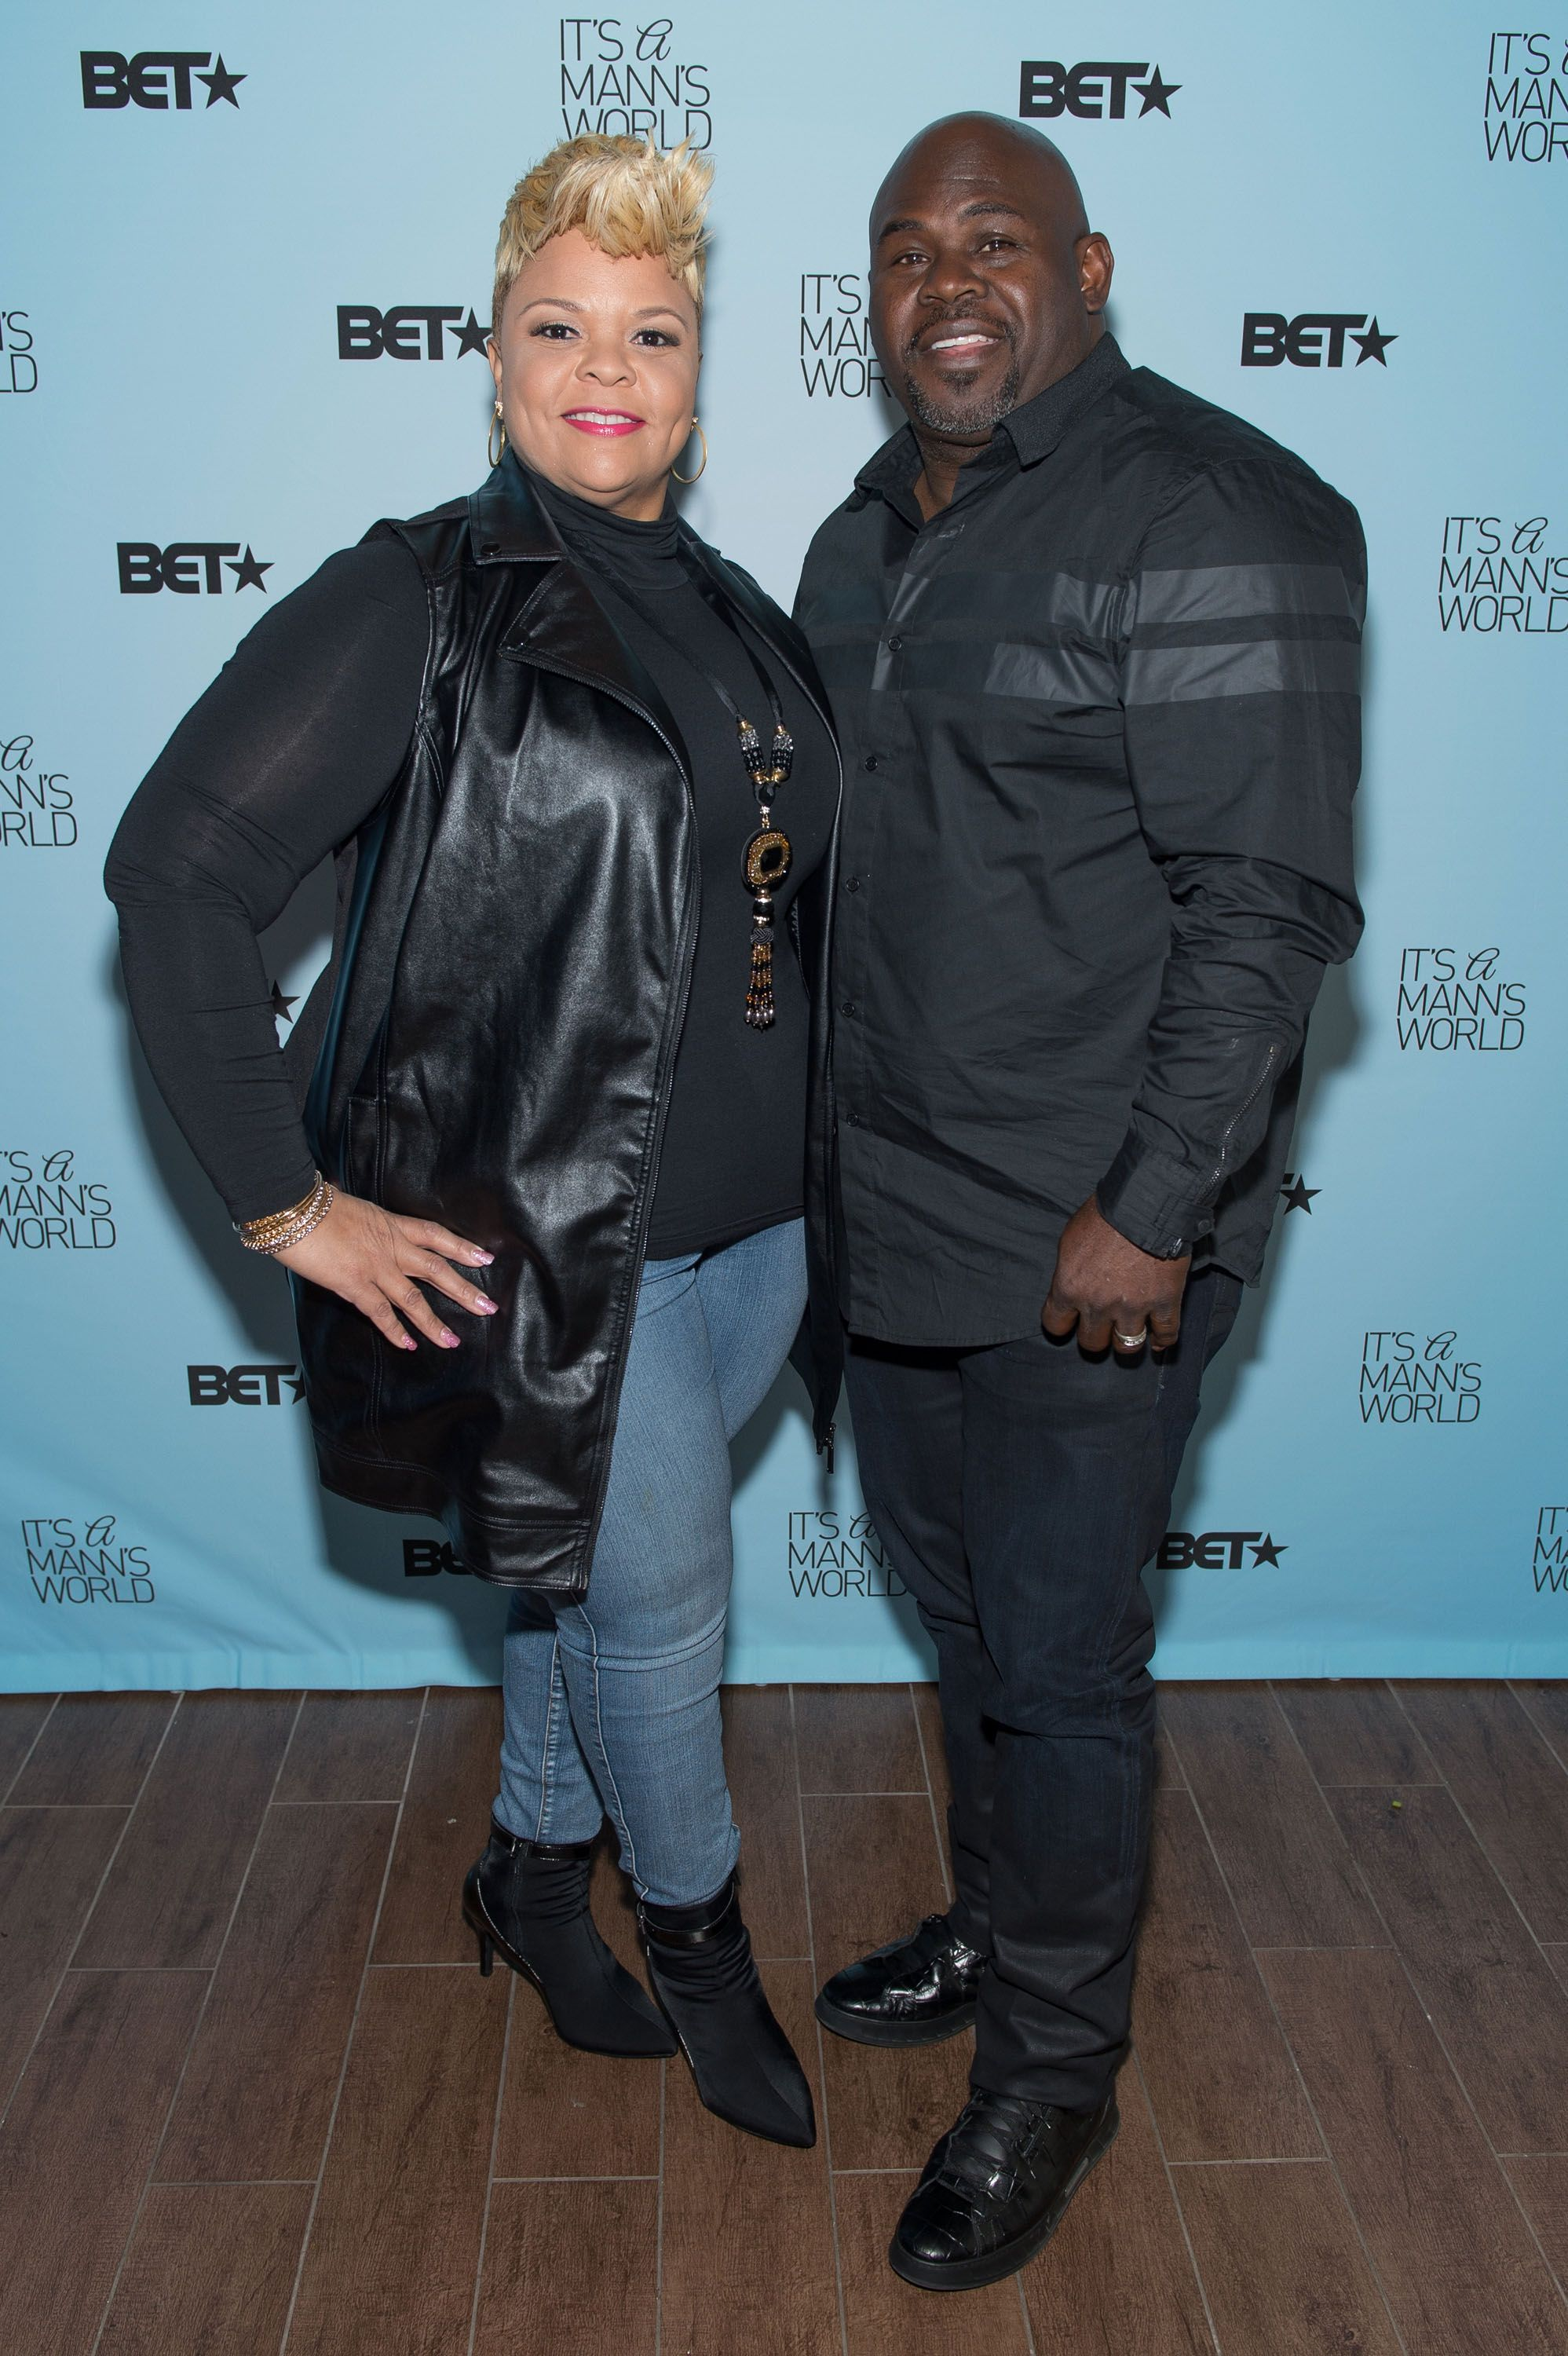 Tamela Mann and actor David Mann attend 'It's a Mann's World' season two luncheon screening at TRACE at the W on February 16, 2016 in Atlanta, Georgia | Photo: Getty Images